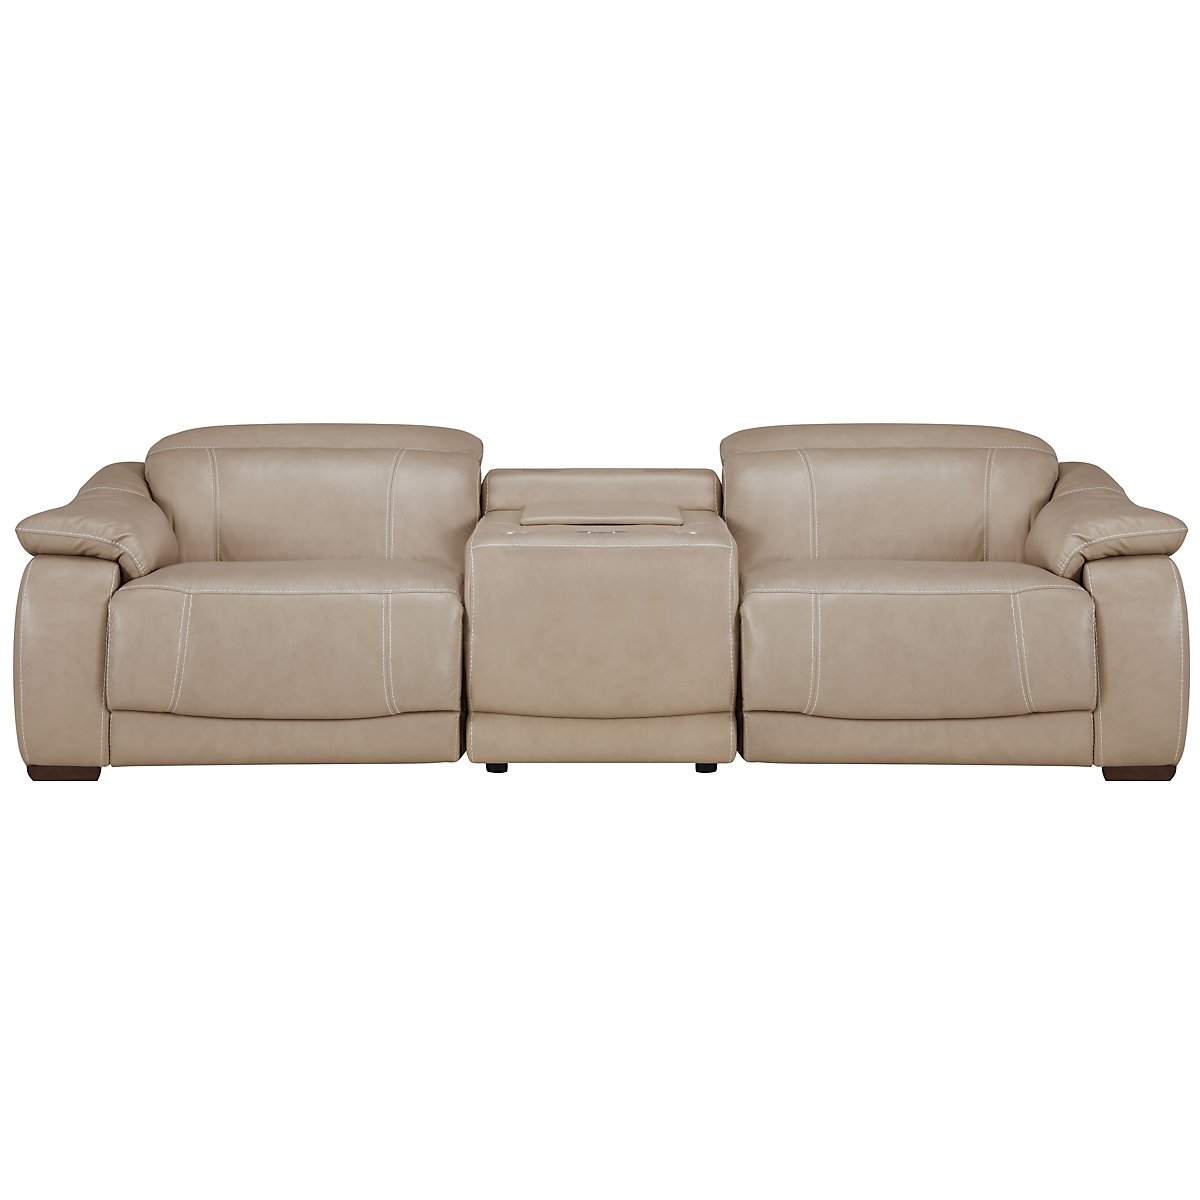 Orion Lt Taupe Leather & Bonded Leather Media Power Reclining Sofa